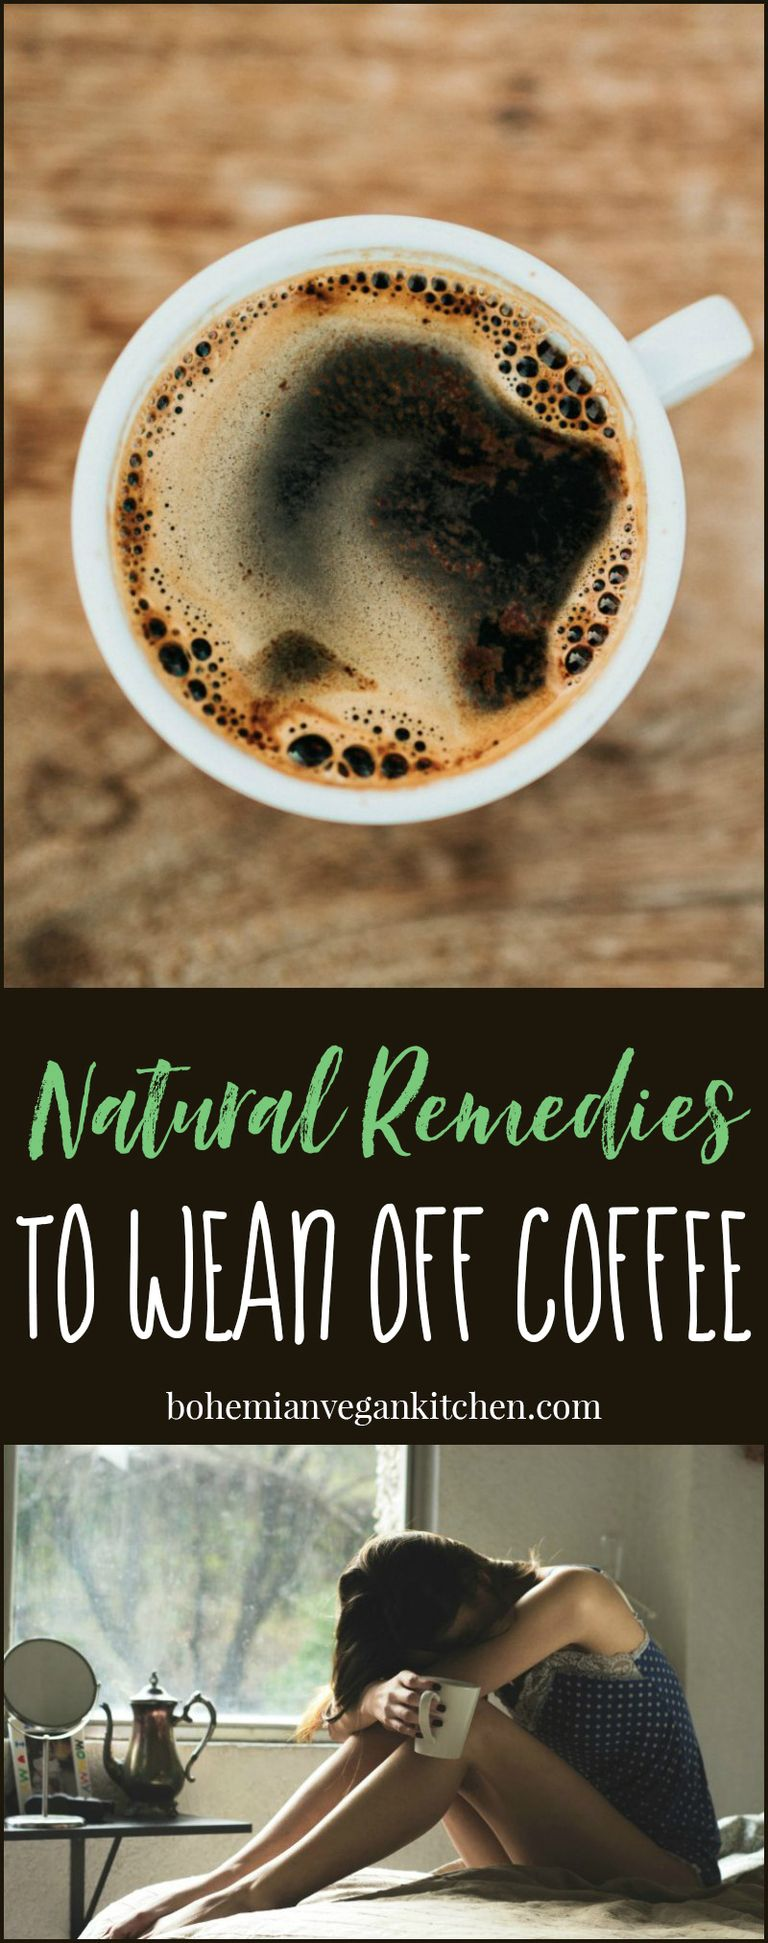 Natural remedies beverages to help you wean off coffee